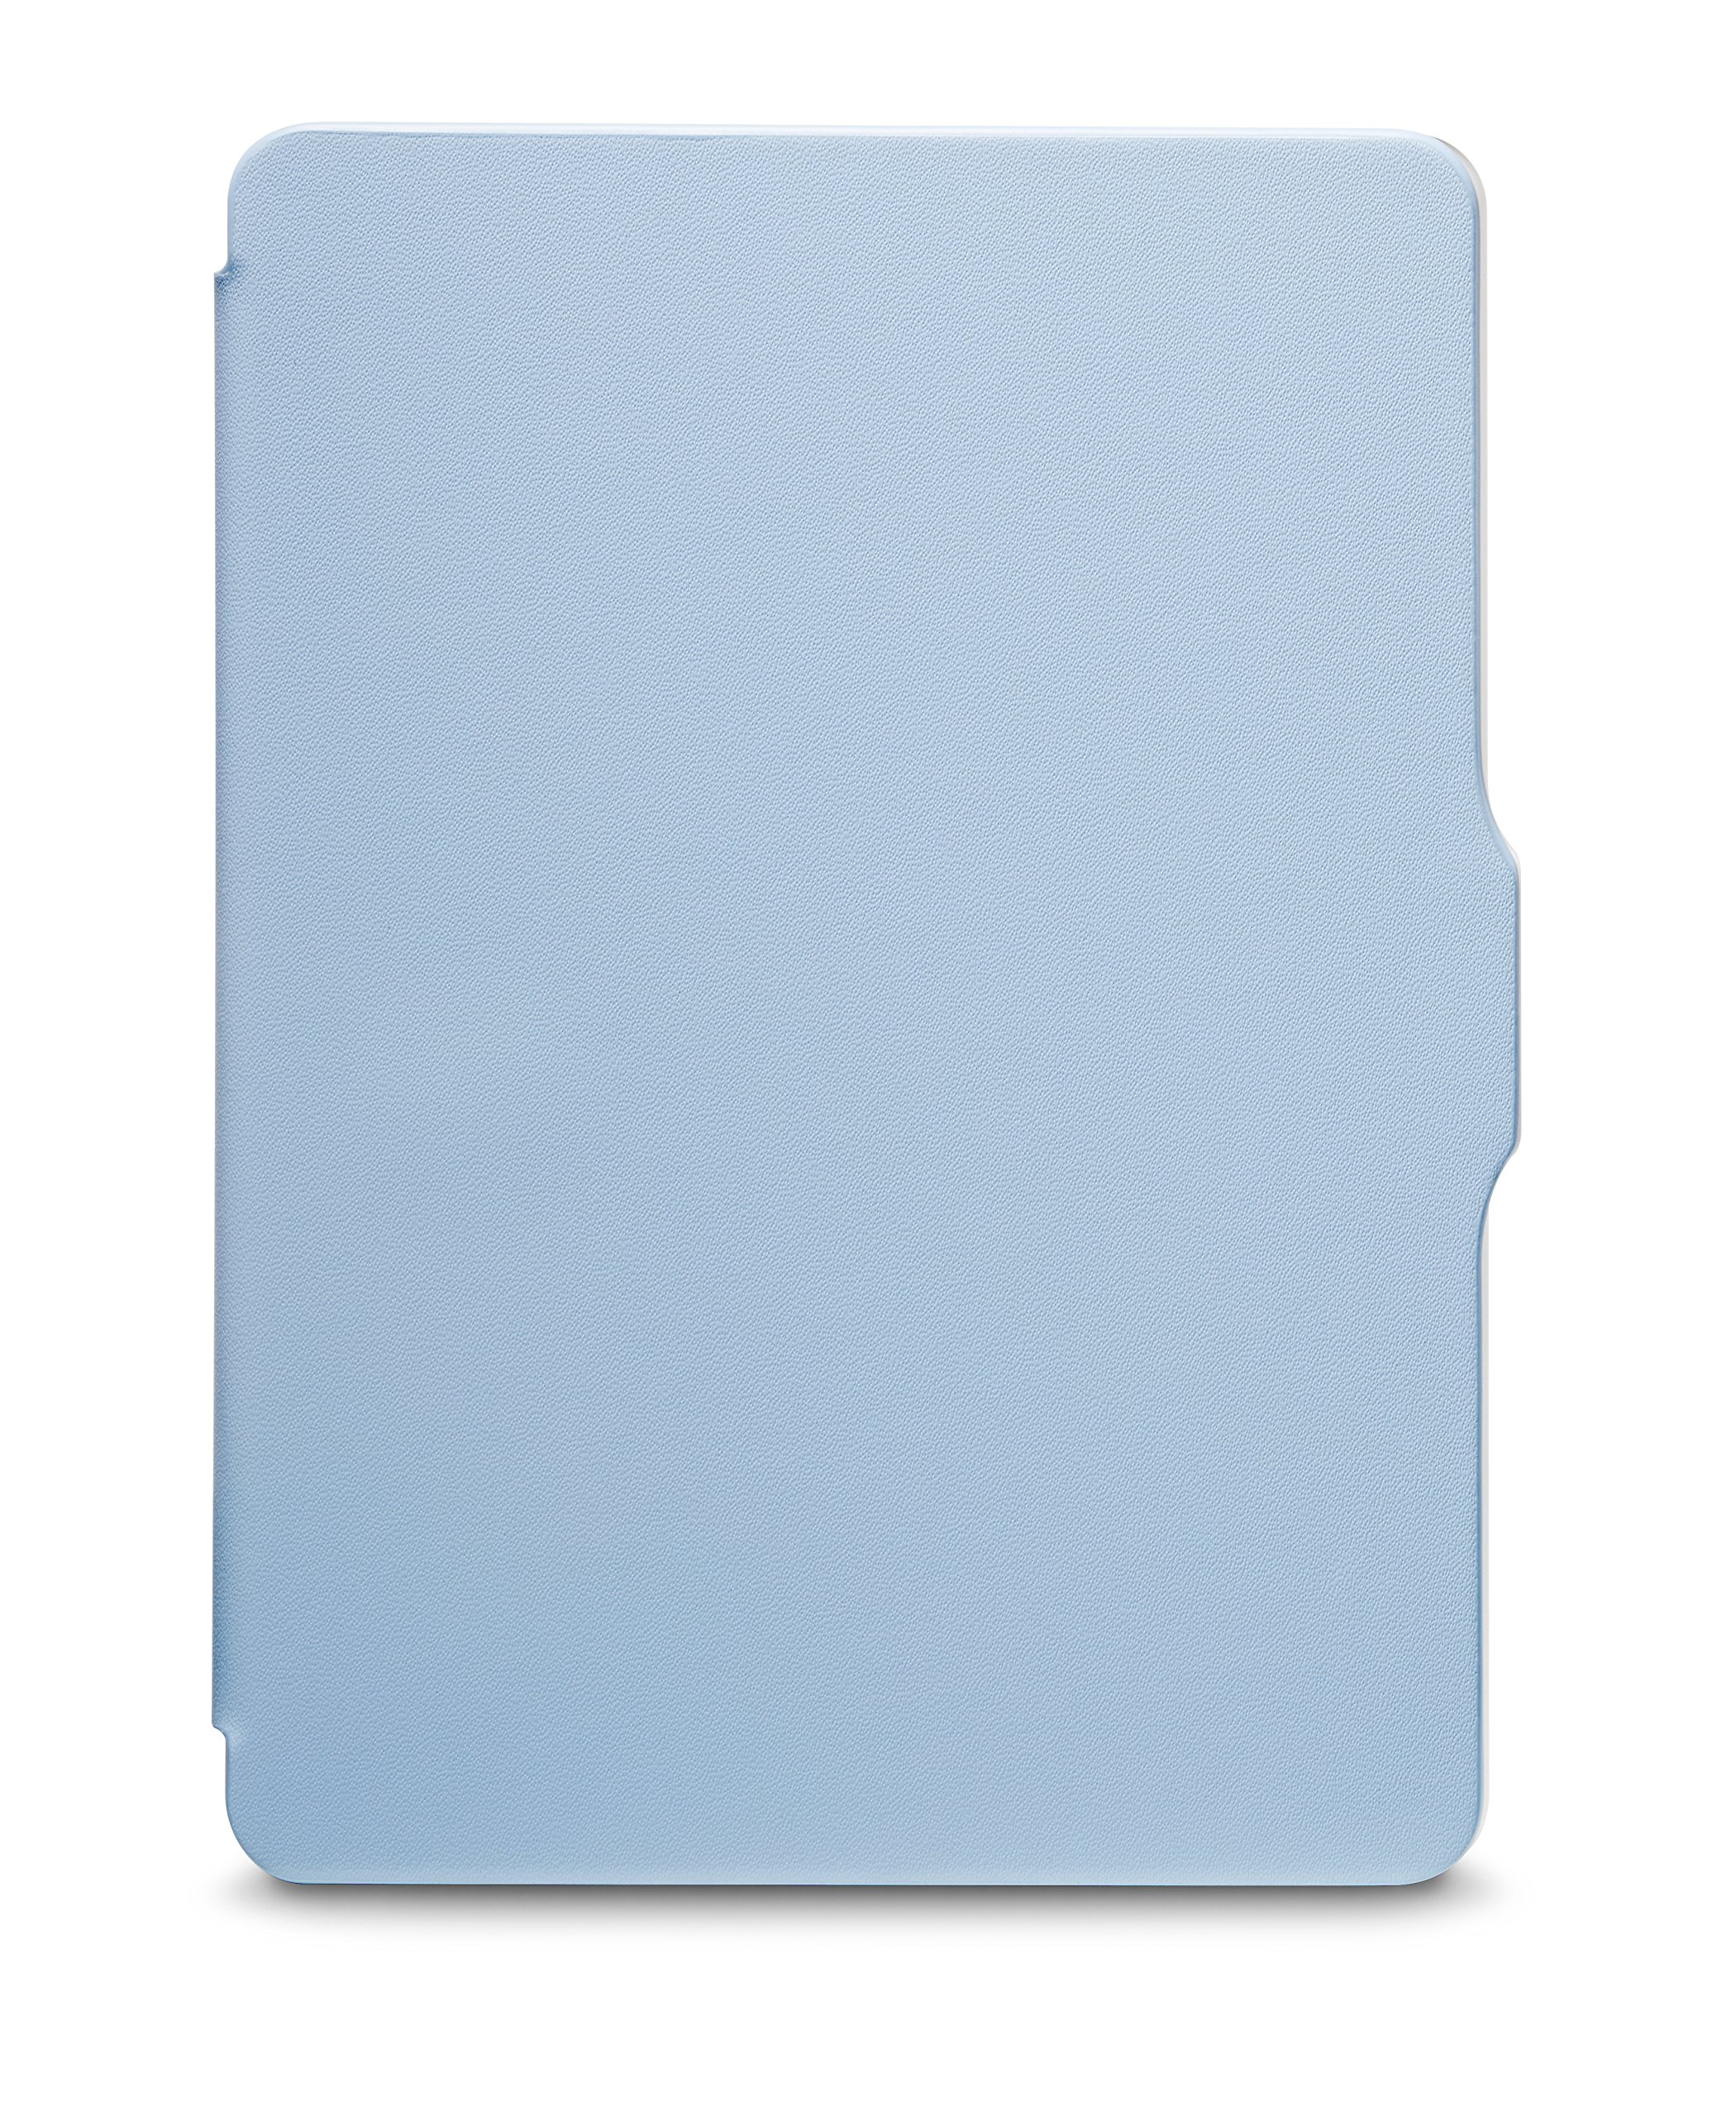 All-New Nupro Kindle Case - Blue White (8th Generation)